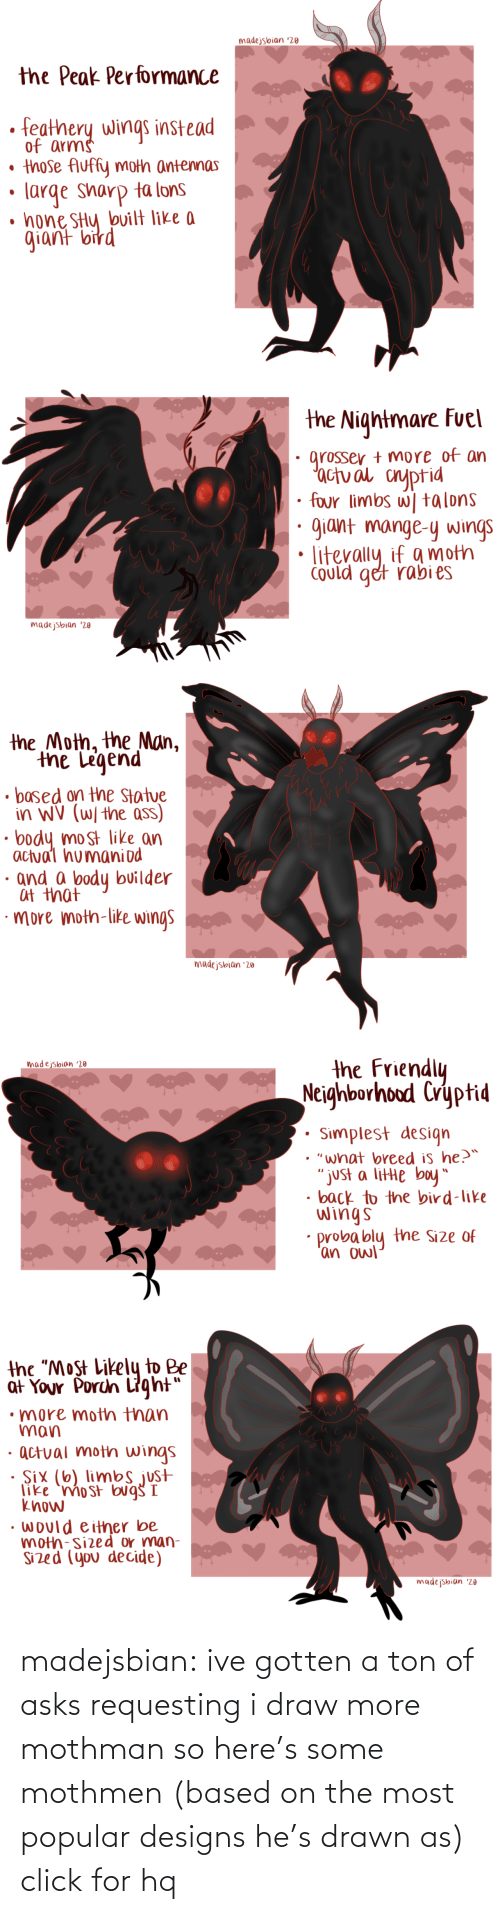 "popular: madejsbian '20  the Peak Performance  feathery wings instead  of arms  • those Auffy moth antennas  large sharp ta lons  • hone SHy bvilt like a  giant bird   the Nightmare Fuel  grosser + more of an  'actual cnyptid  four limbs w| talons  giant mange-y wings  Could get rabi es  madejsbian '20   the Moth, the Man,  the Legend  • based on the Statue  in WV (W/ the ass)  body most like an  actual humaniod  · and a body builder  at that  ·more moth-like wings  madejsbian '20   the Friendly  Neighborhood Cryptid  madejsbian '20  Simplest design  • ""what breed is he?™  ""just a litte boy""  • back to the bird-like  wings  probably the Size of  'an owl   the ""Most Likely to Be  at Your Porch Light""  •more moth than  man  · actual moth wings  · Six (6) limbs just  like 'mo st bug I  know  • would either be  moth-sized or man-  Sized (you decide)  madejsbian '20 madejsbian: ive gotten a ton of asks requesting i draw more mothman so here's some mothmen (based on the most popular designs he's drawn as)